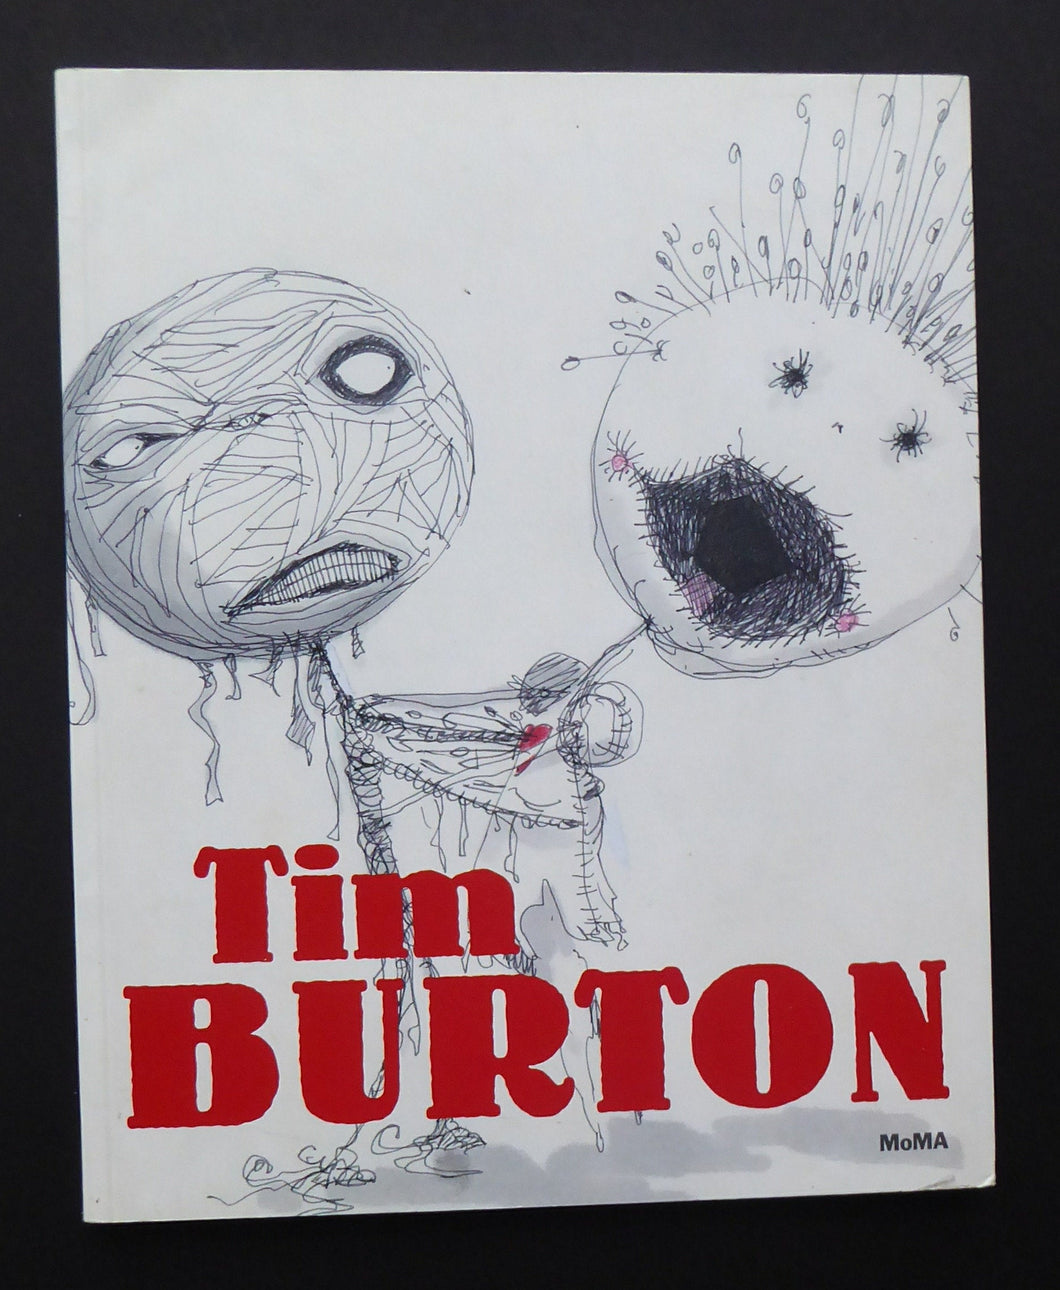 MOMA American Exhibition Catalogue on the work of TIM BURTON. Fine Illustrations. Excellent Condition